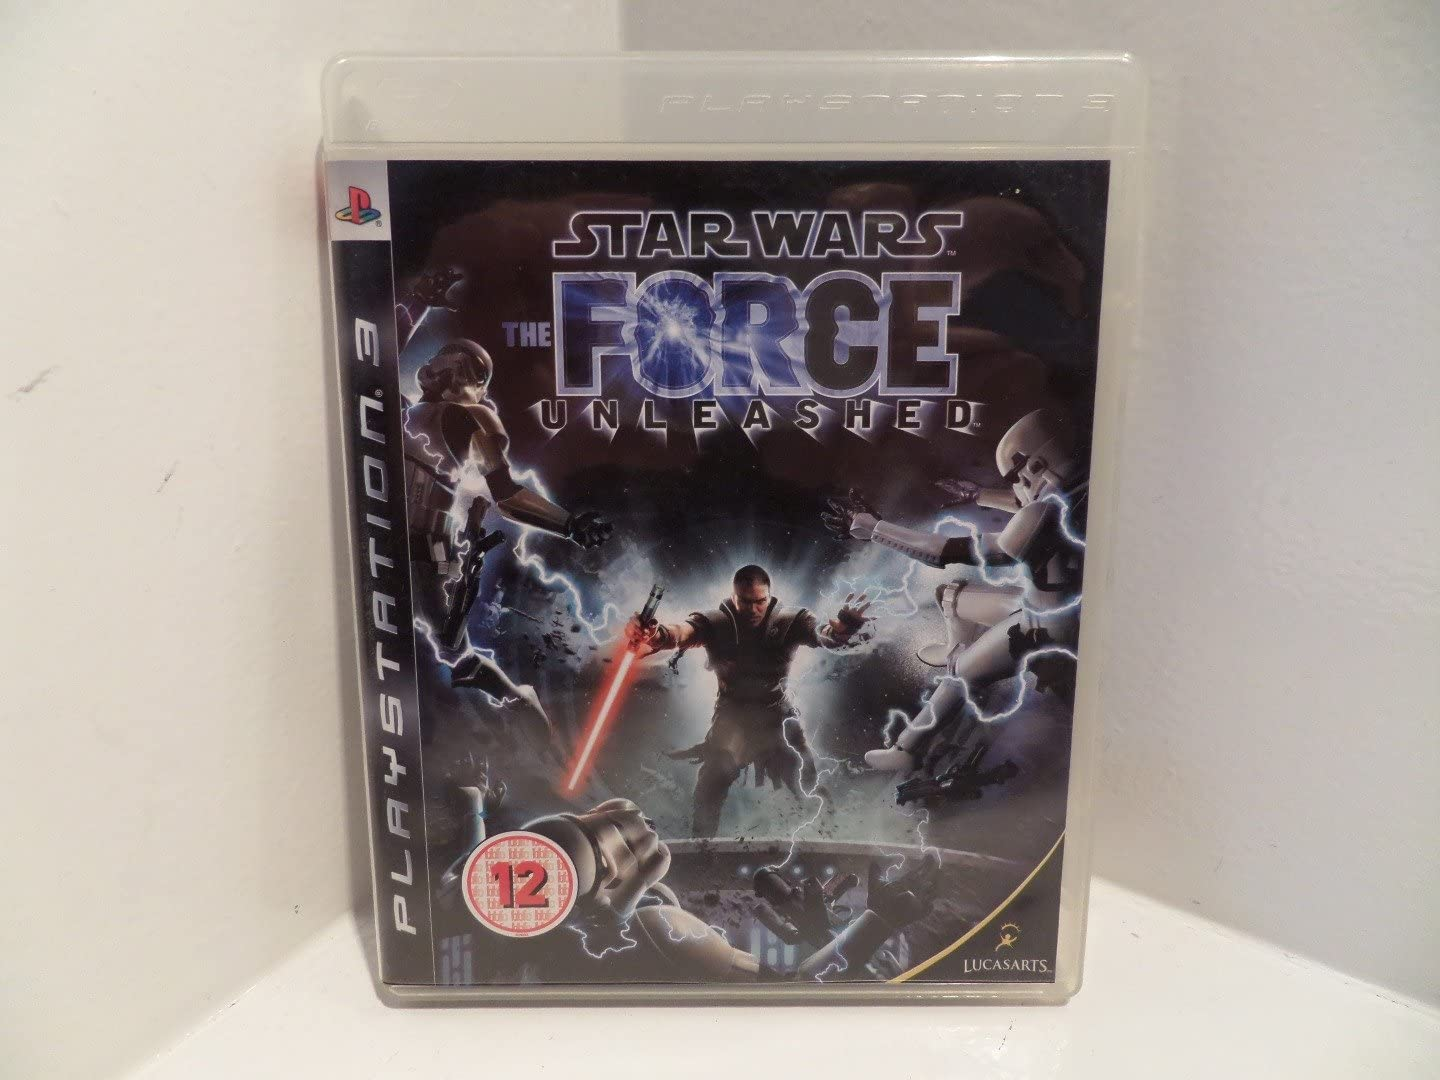 Star Wars: The Force Unleashed (PS3) [Import Anglais]: Amazon.es: Videojuegos